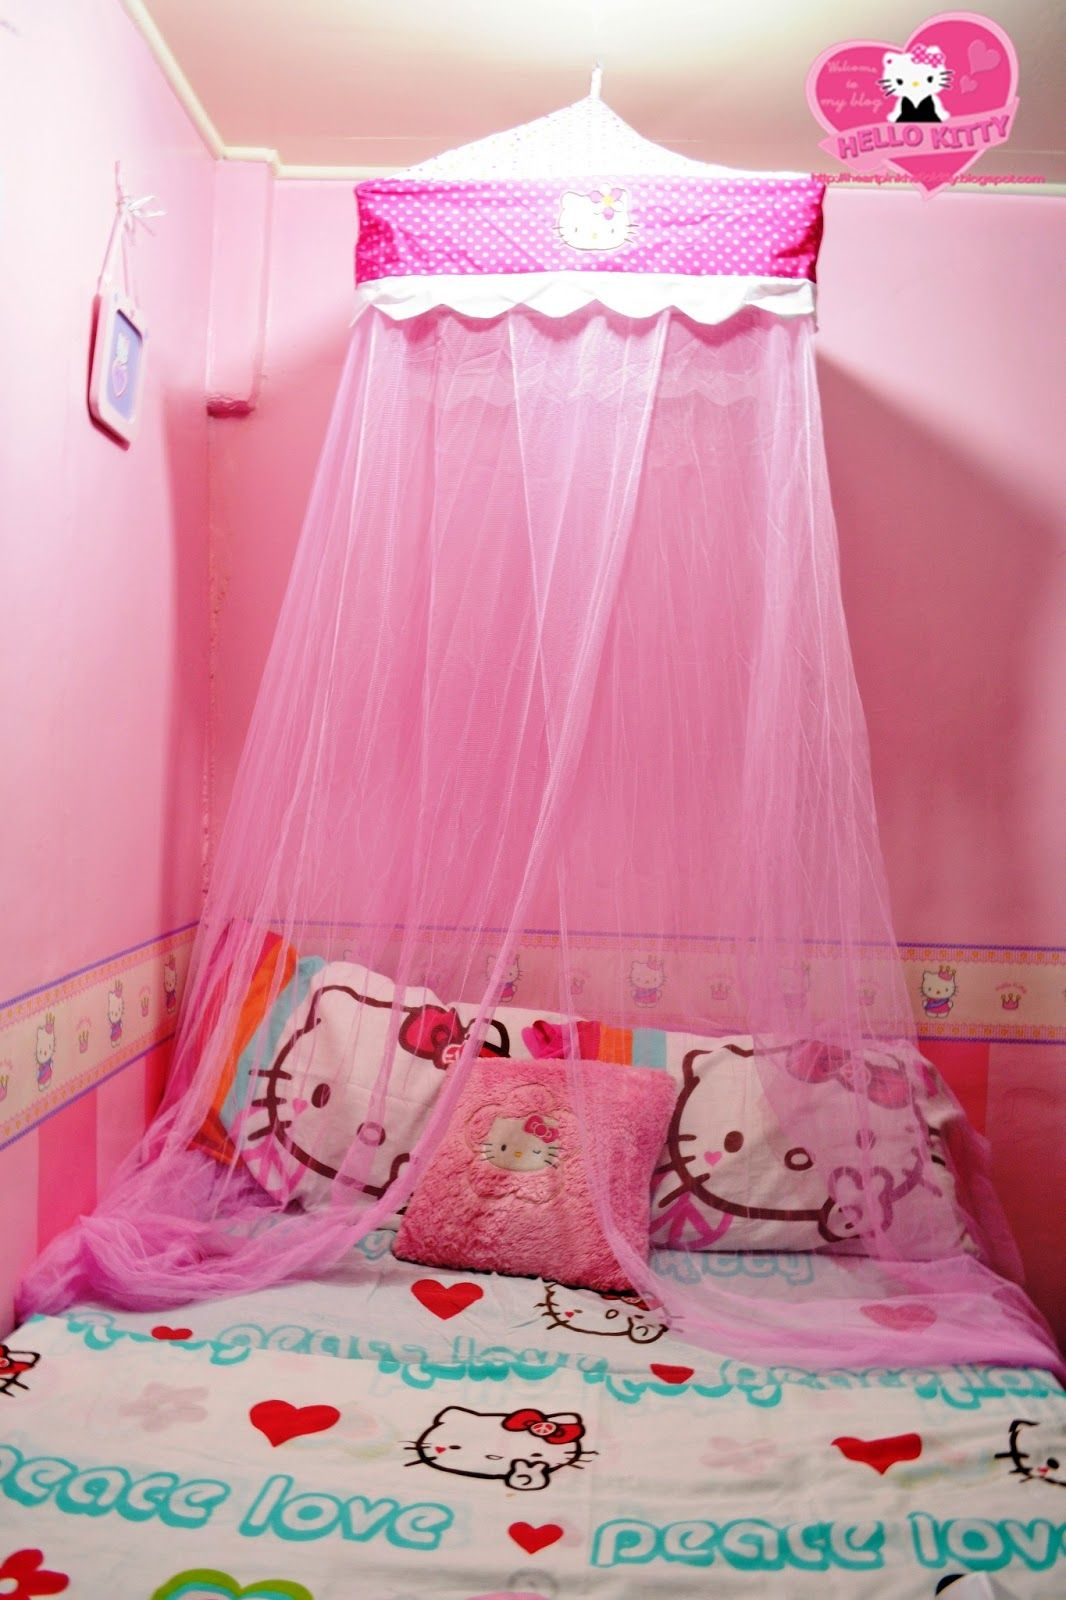 Etonnant Hello Kitty Bedroom Set Qmqpn